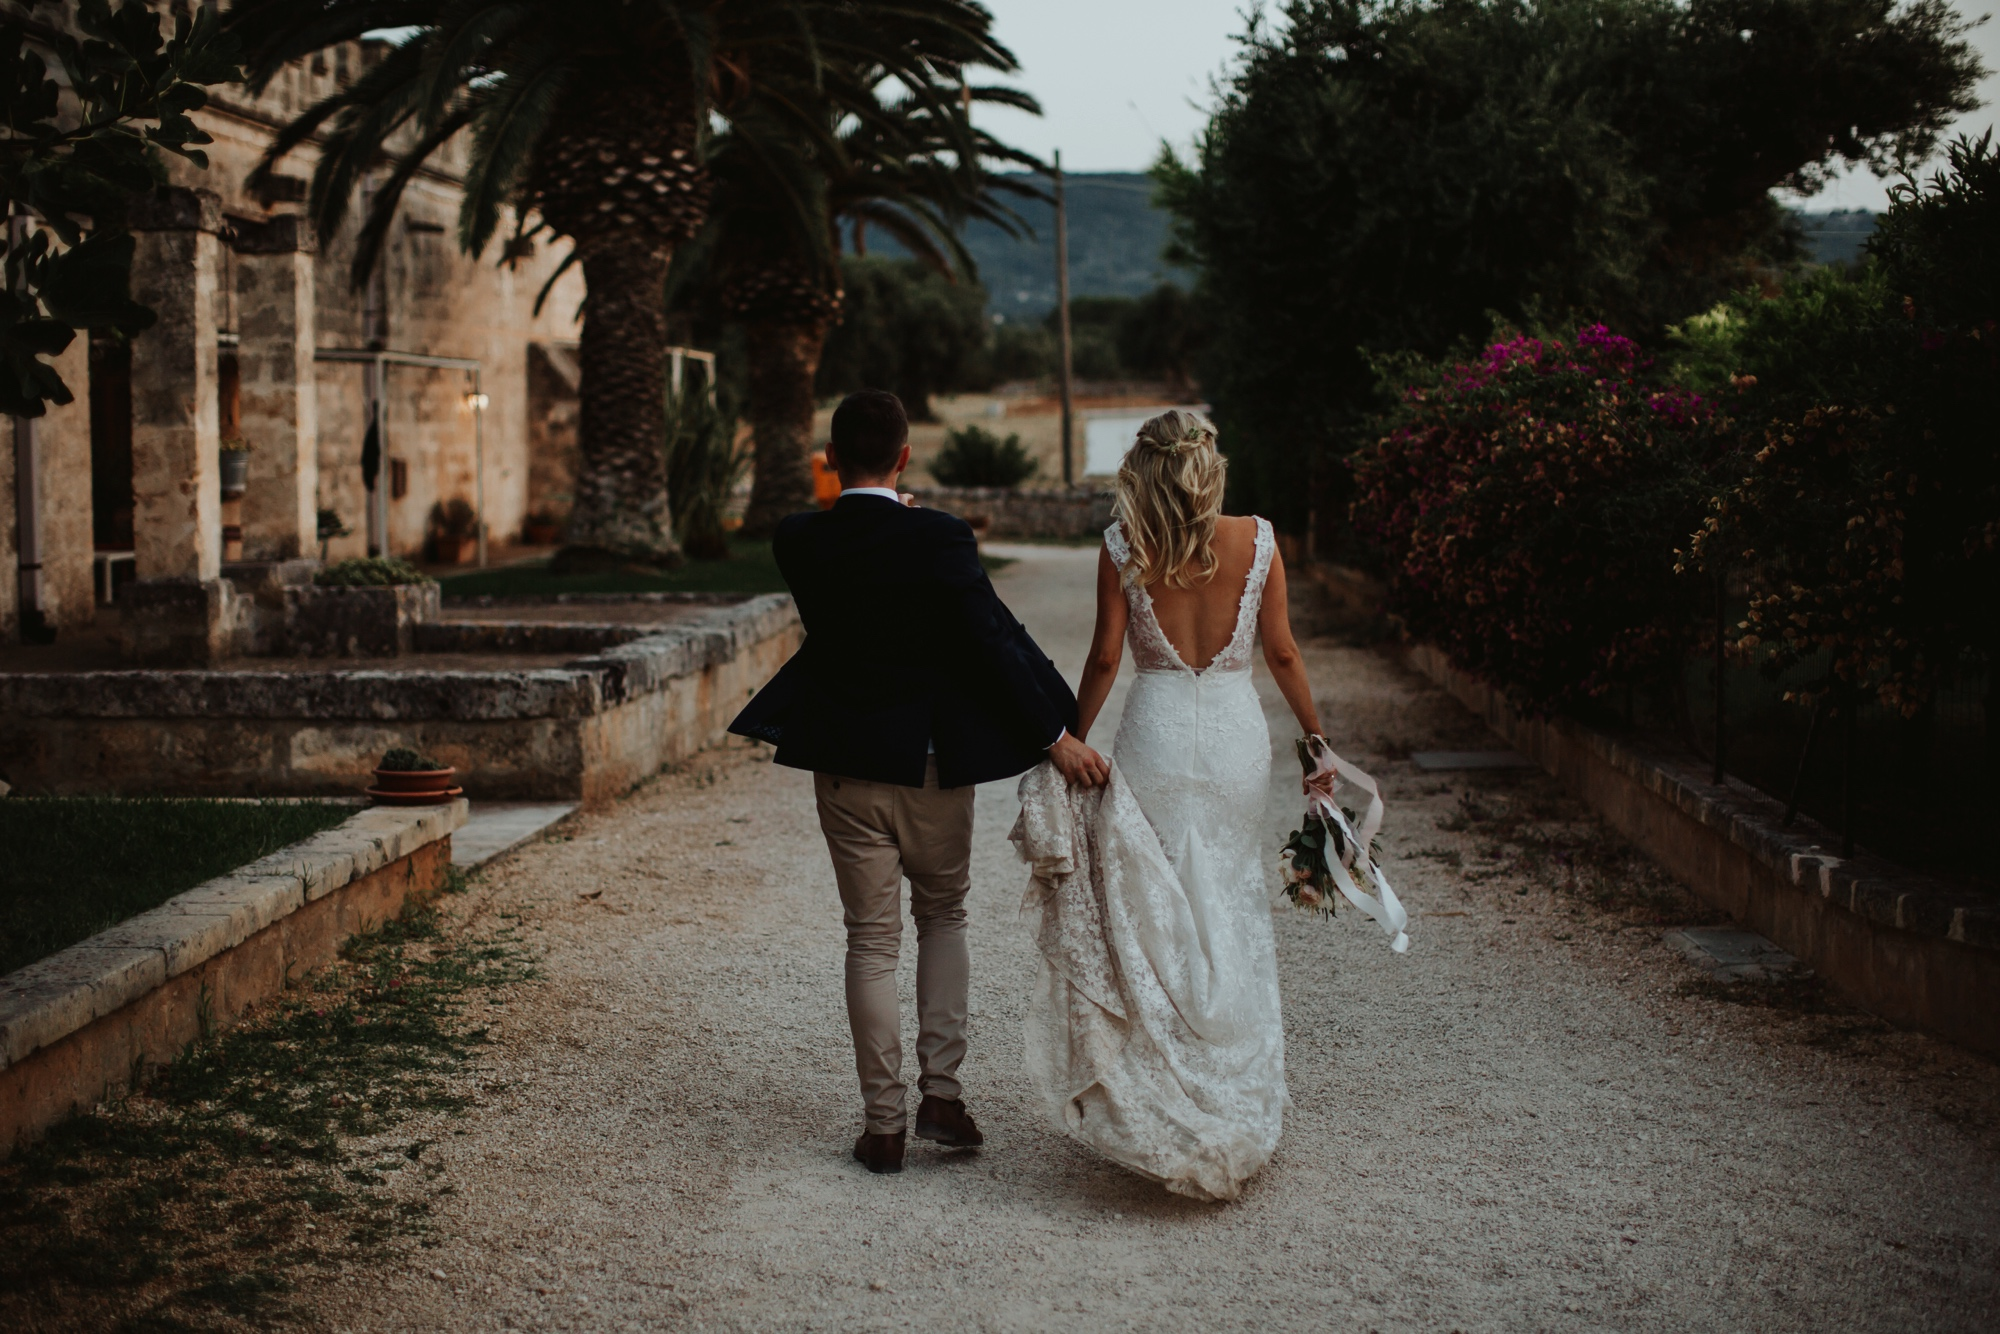 0000000063_Rob and Lucy-711_Weddings_Destination_Italy_got_Just_Engaged.jpg